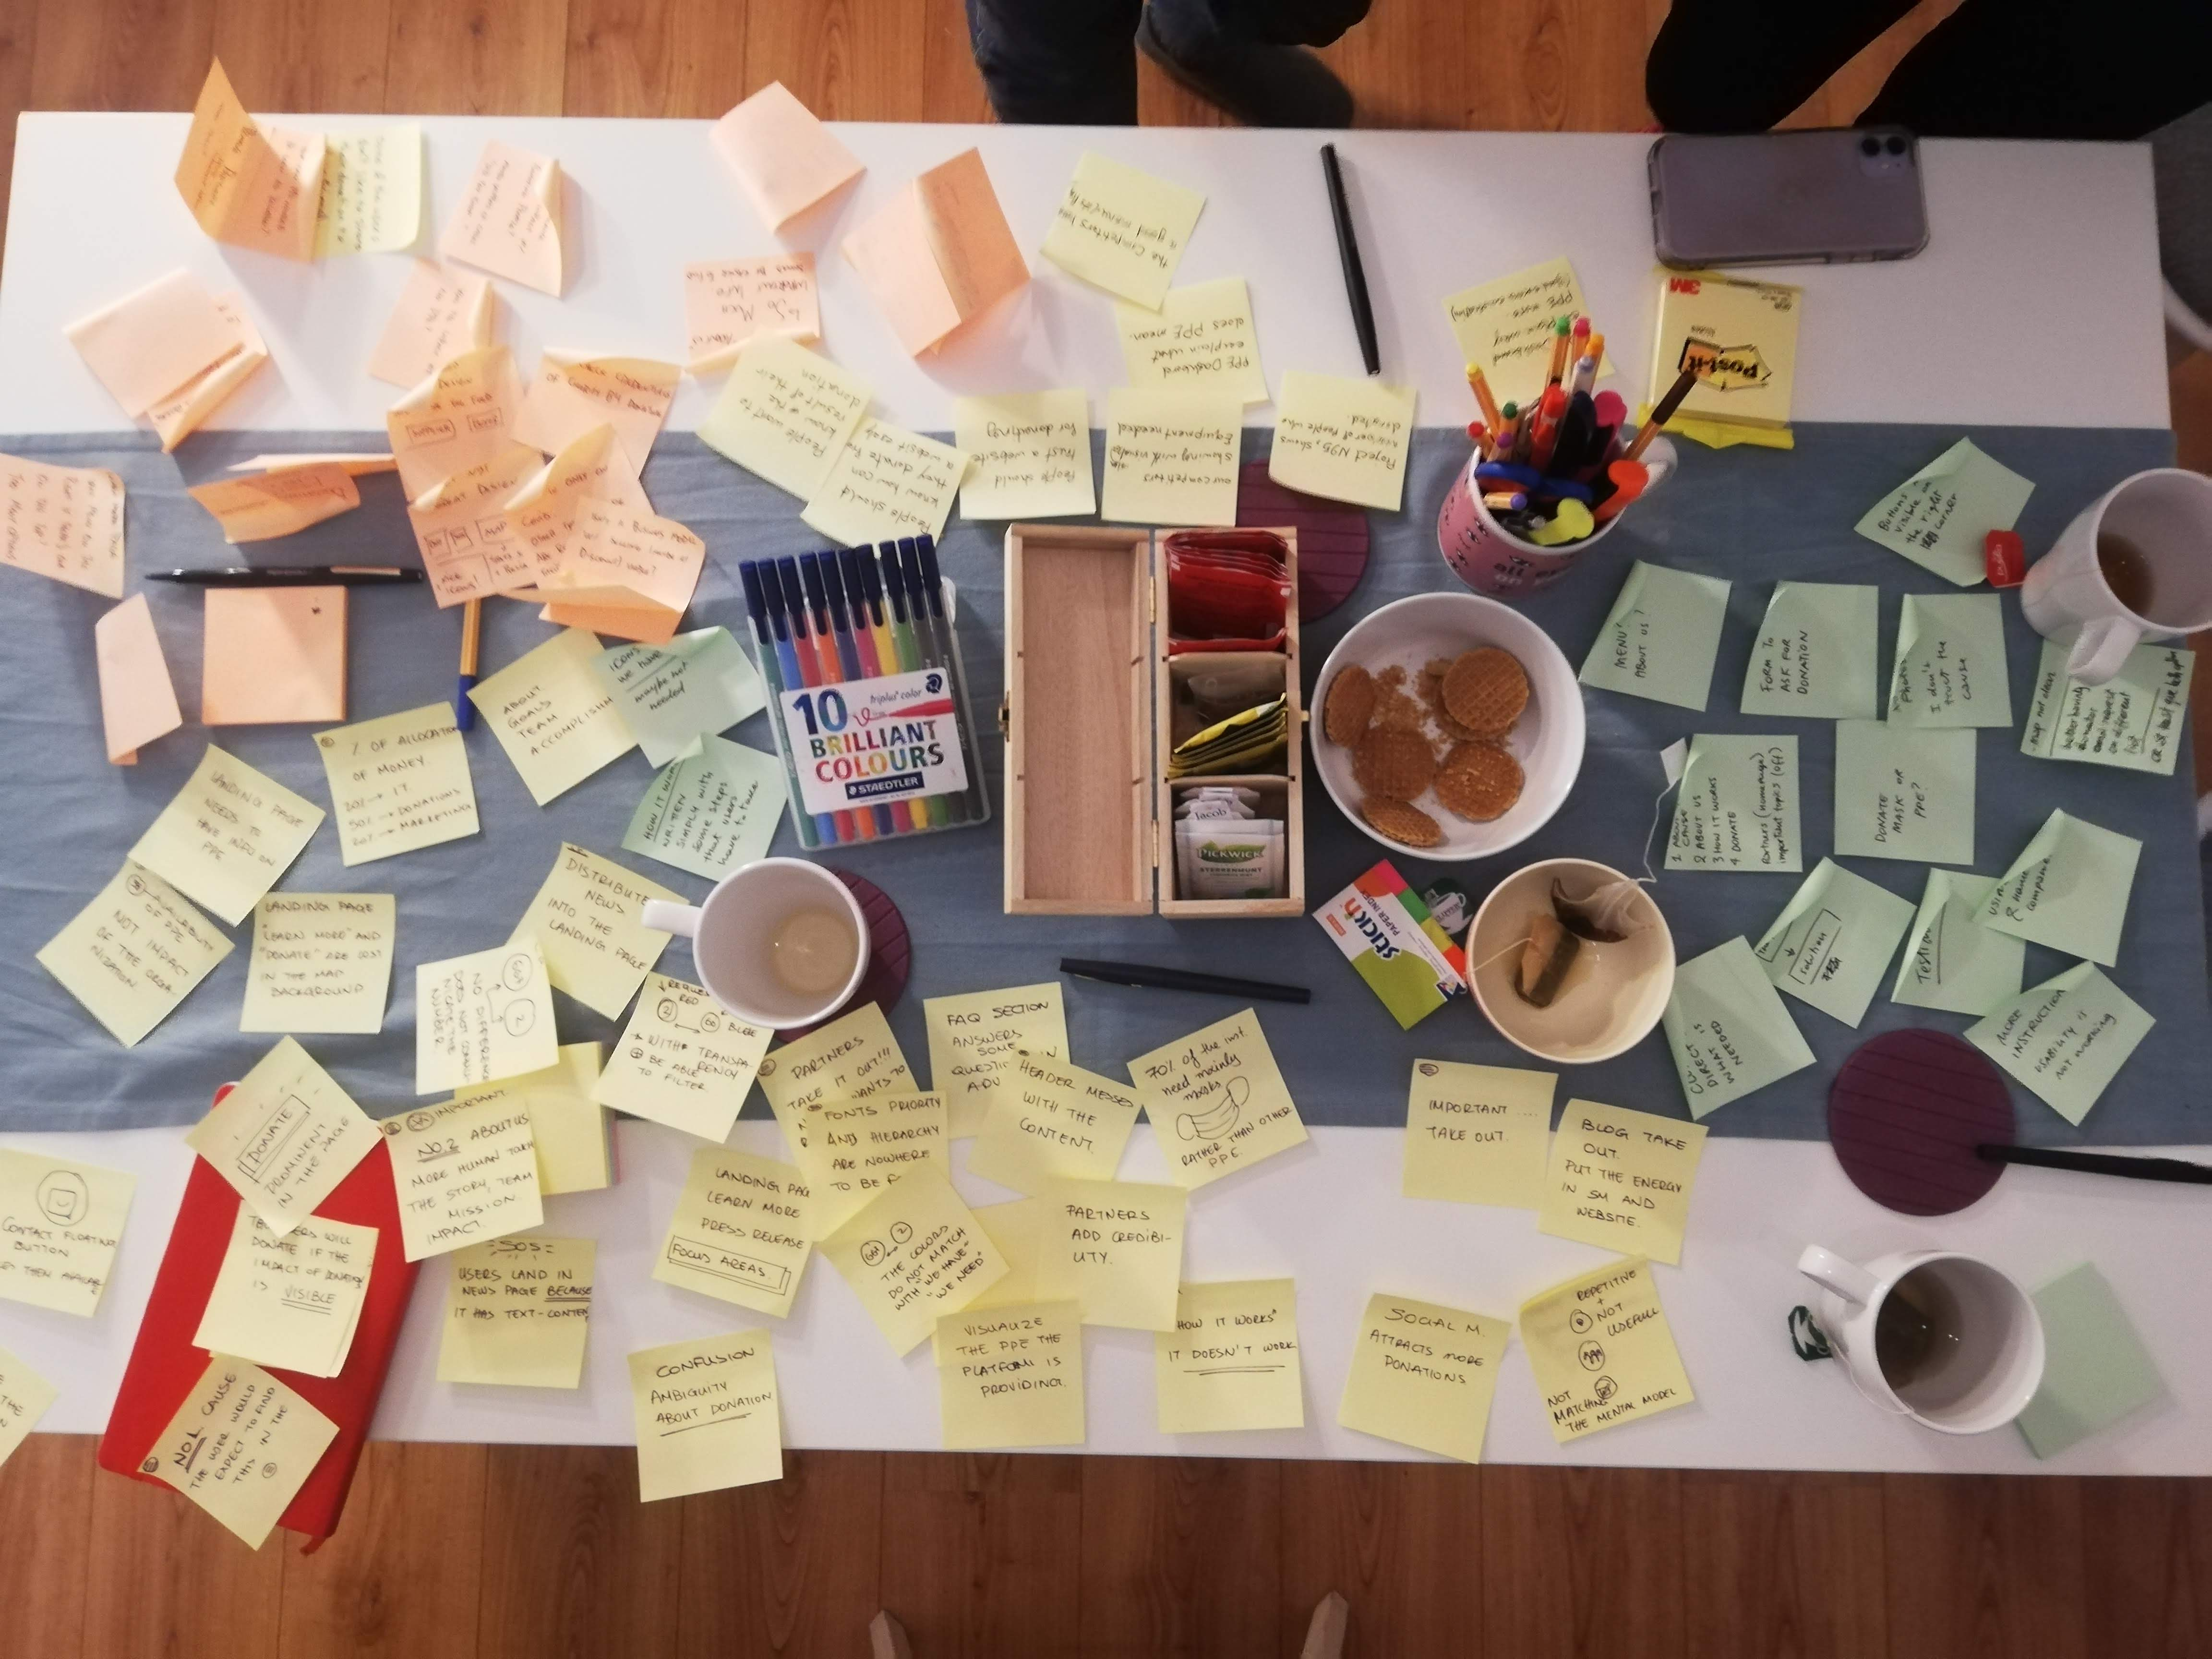 Affinity diagram session.